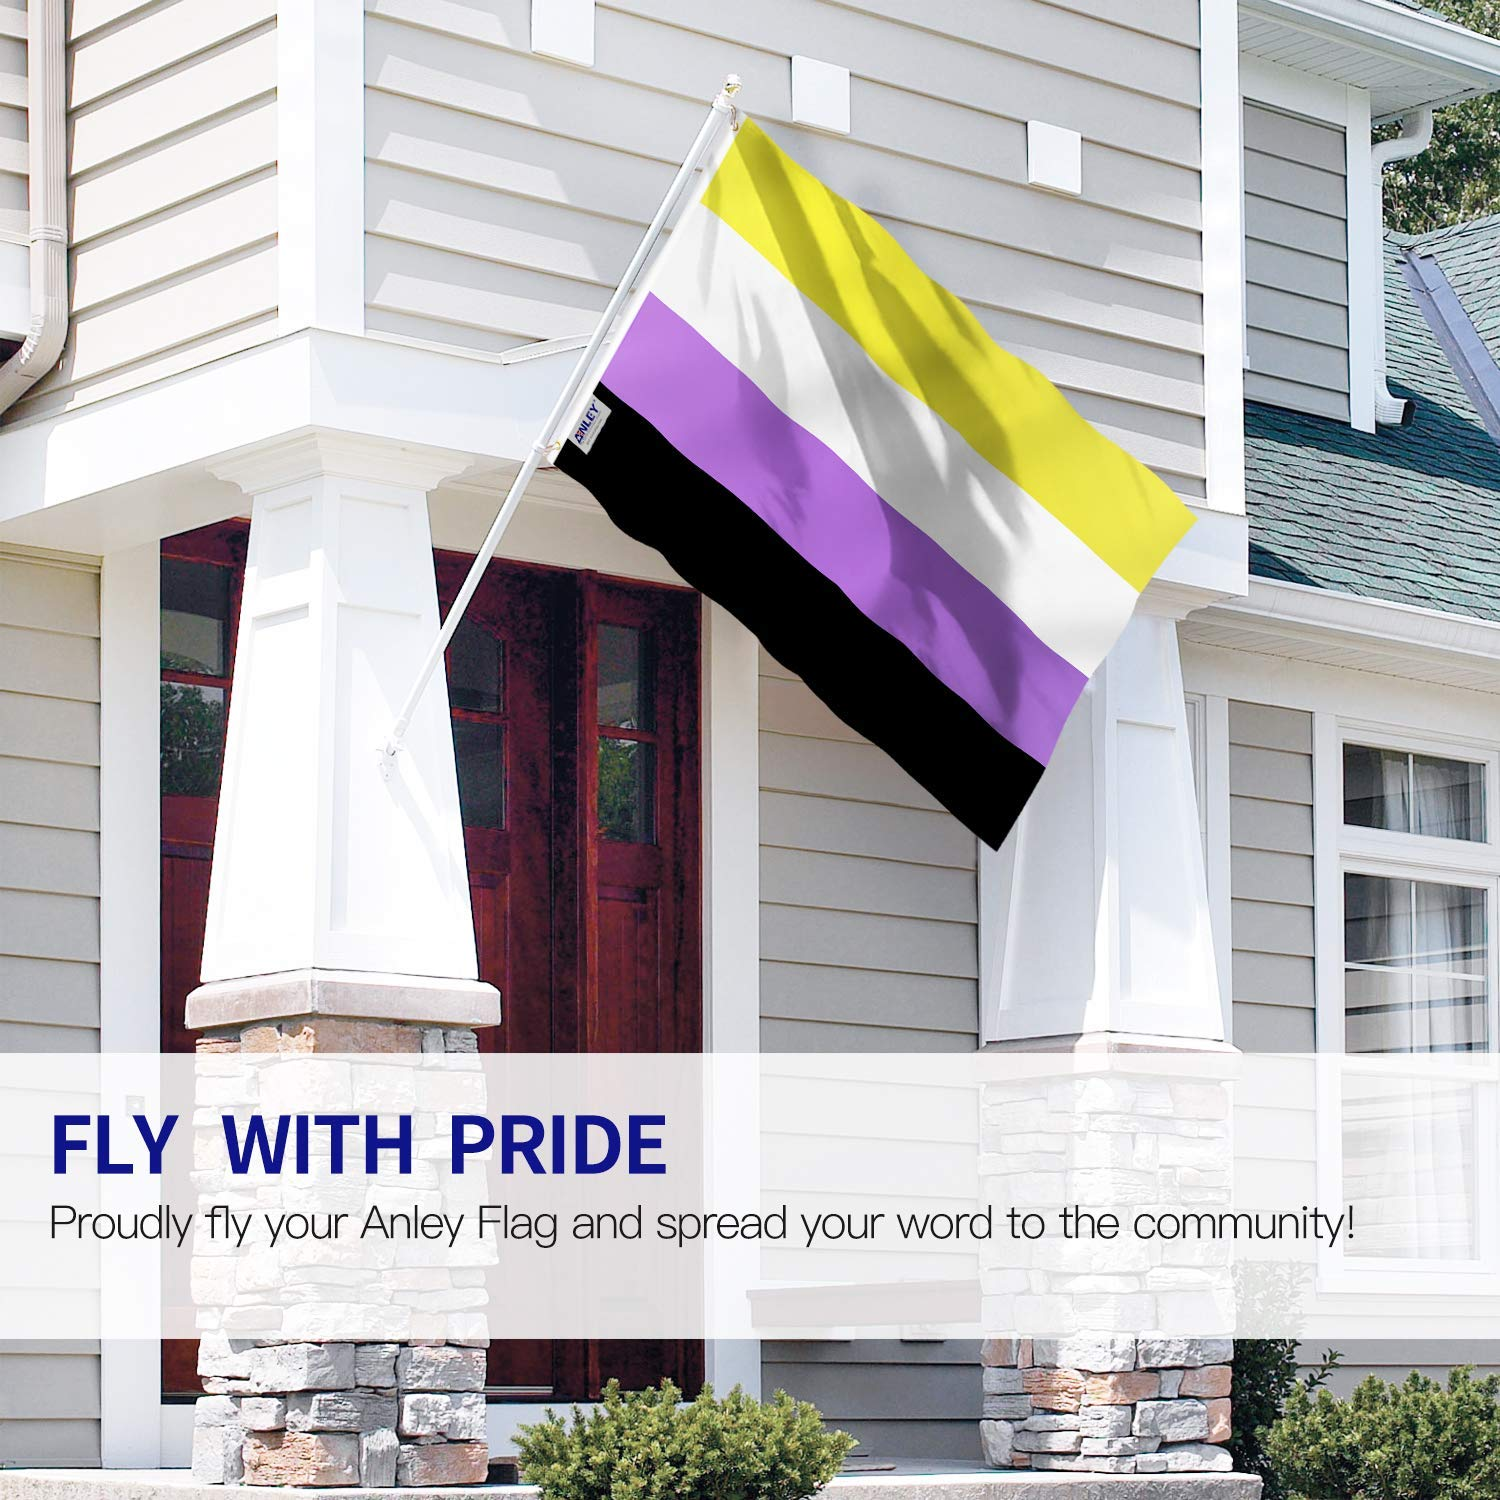 Double Stitched NB Pride Genderqueer Gender Identity Flags Polyester with Brass Grommets 3 X 5 Ft Anley Fly Breeze 3x5 Ft Non-Binary Pride Flag Vivid Color and UV Fade Resistant